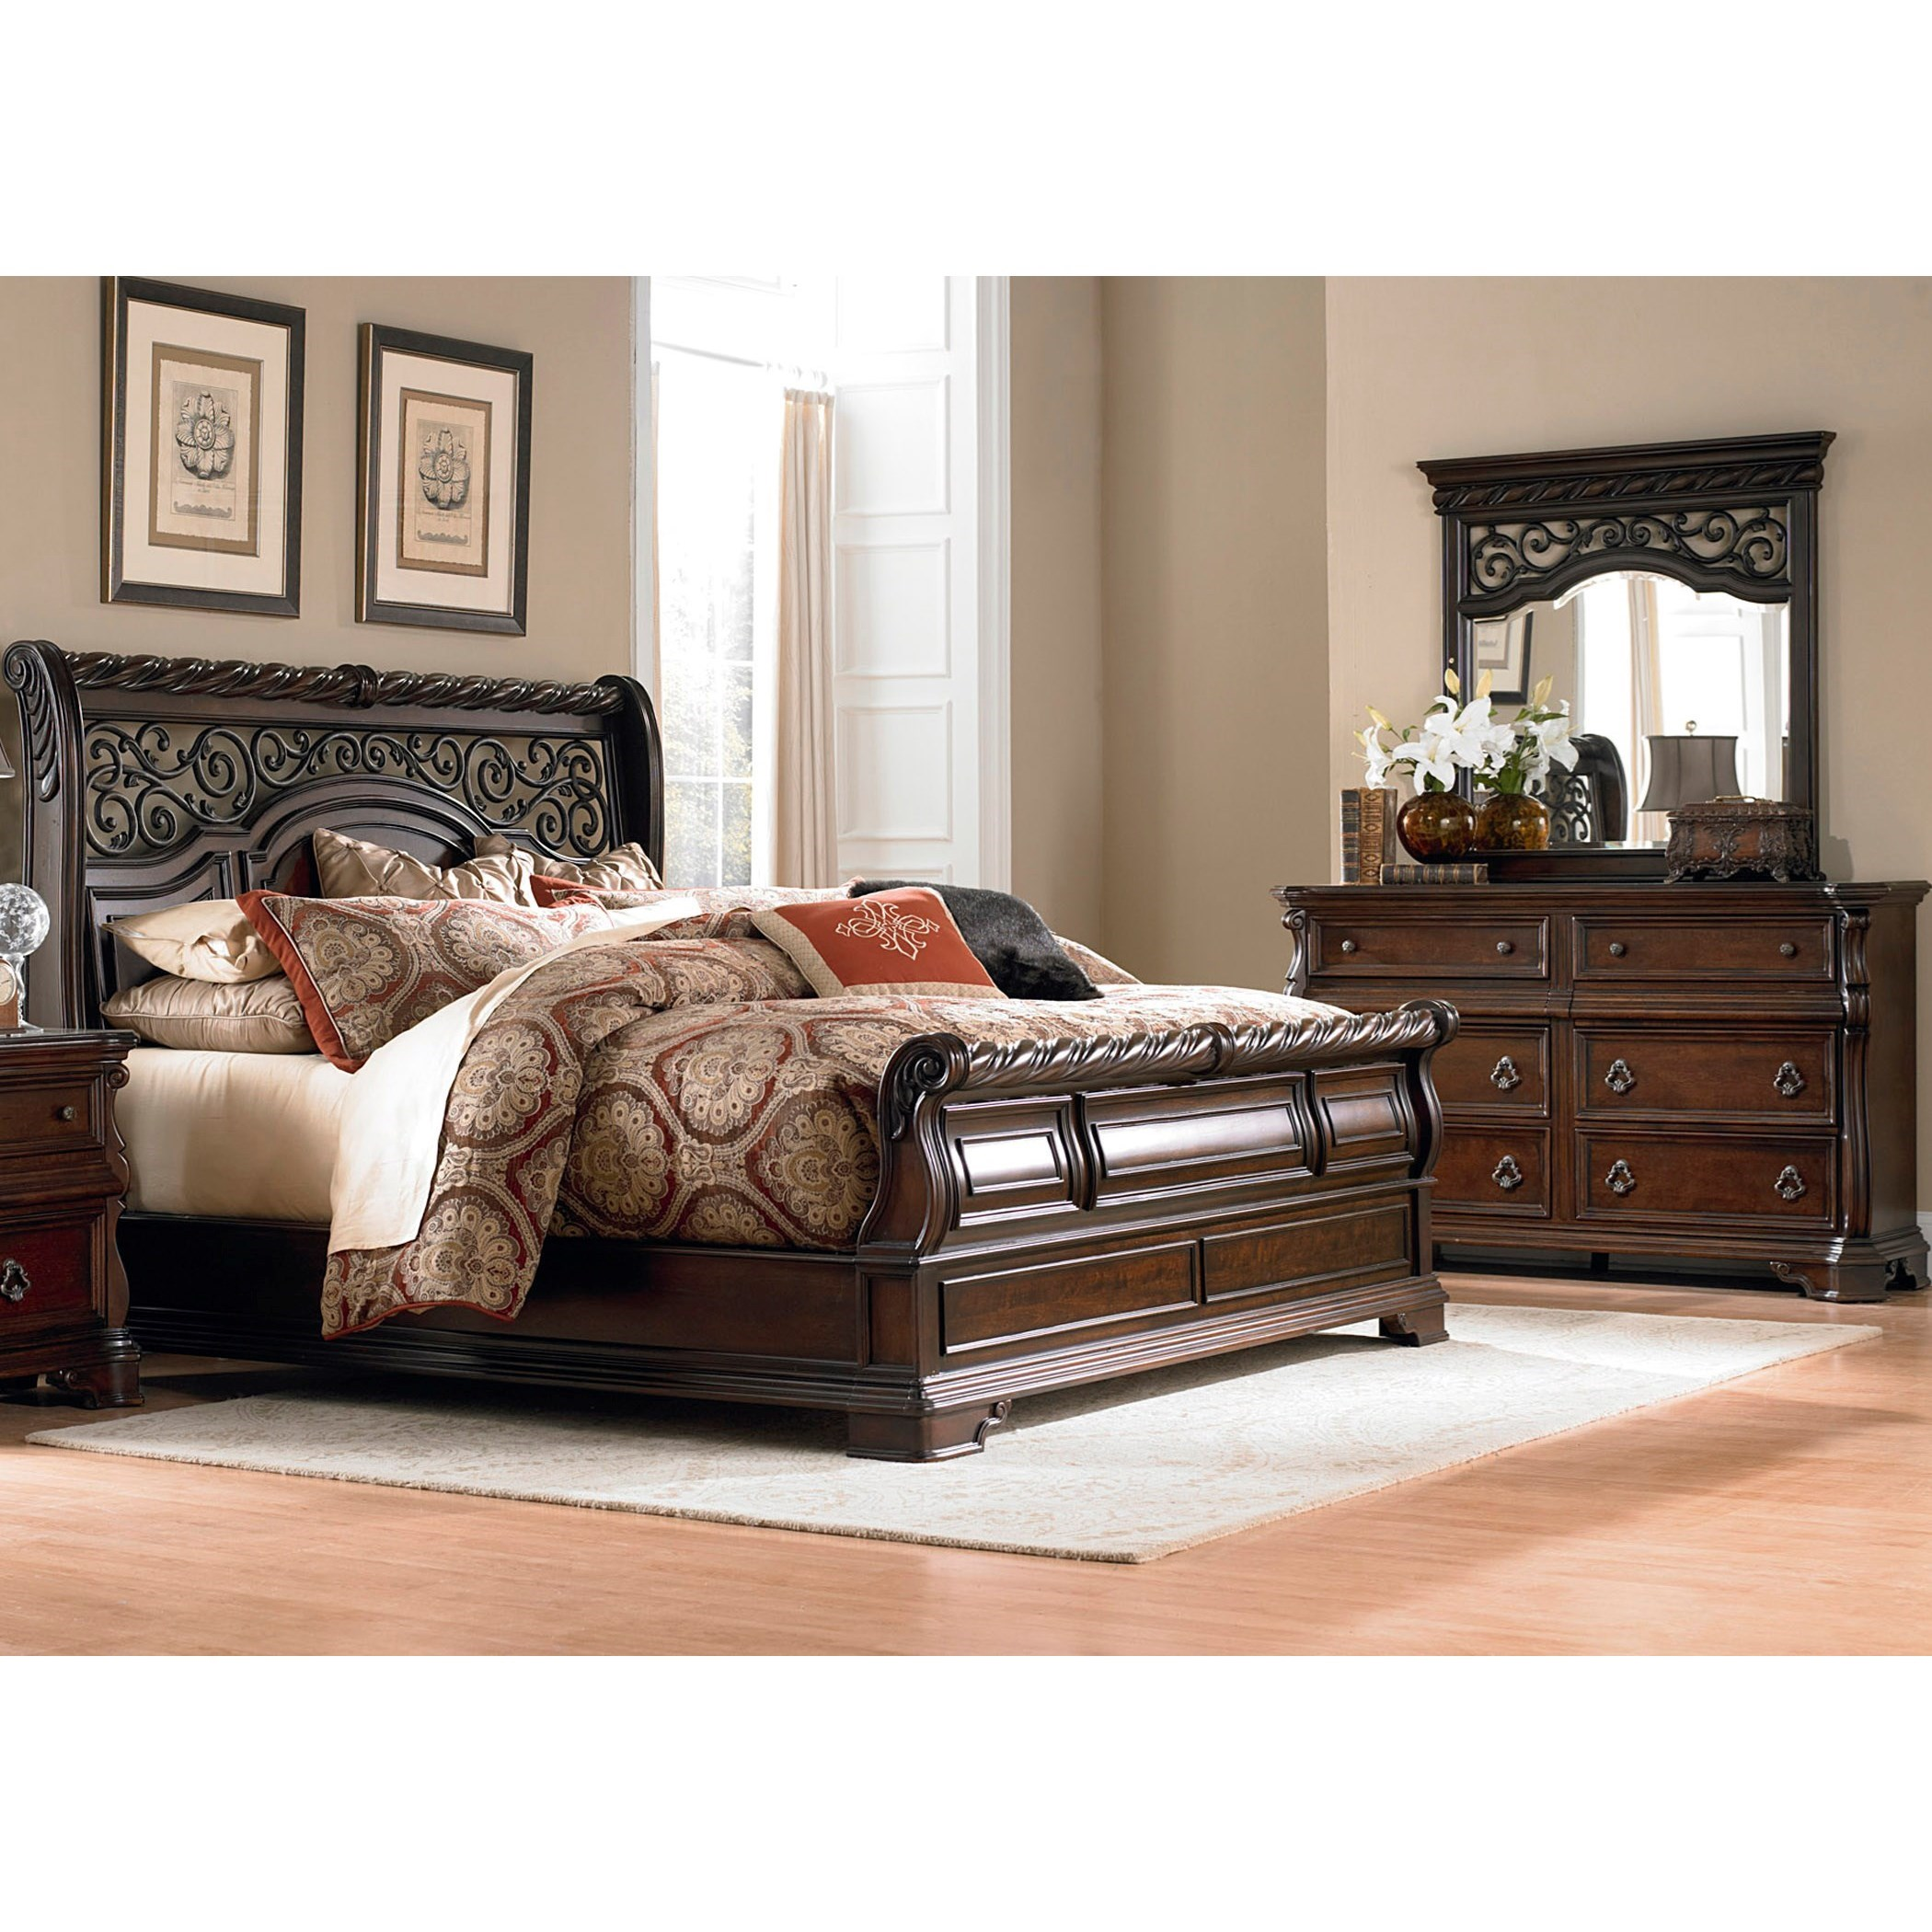 Arbor Place King Bedroom Group by Liberty Furniture at Catalog Outlet